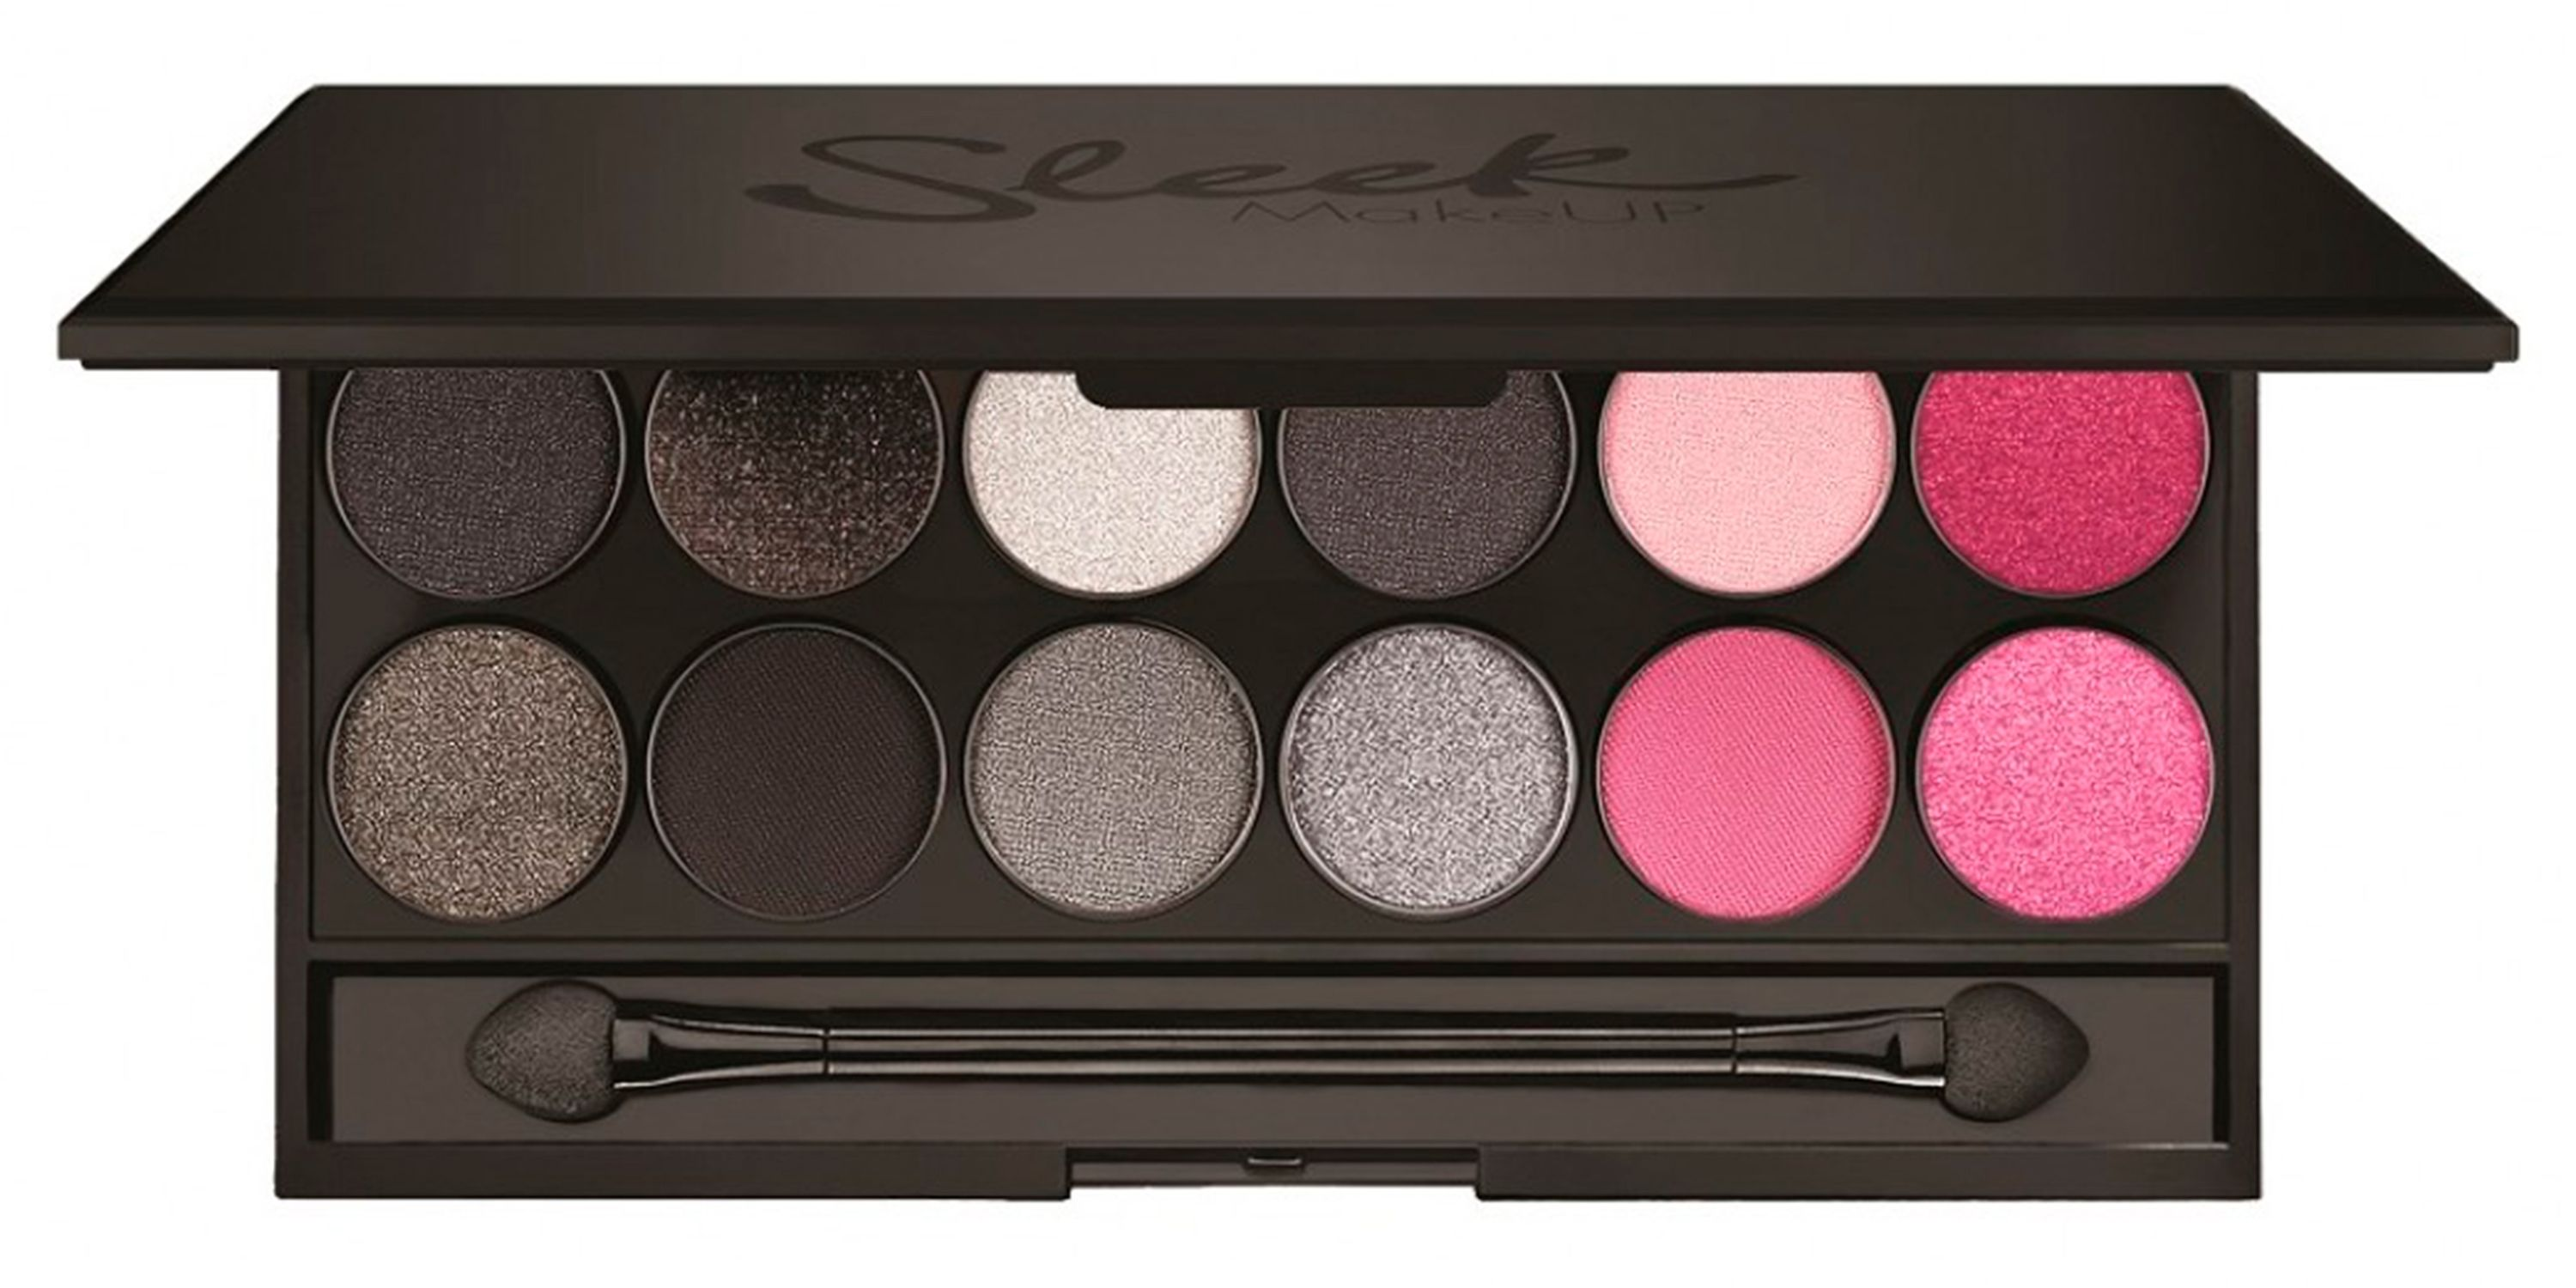 Best Eyeshadow Palette 2019 12 Swatched On Different Skin Tones